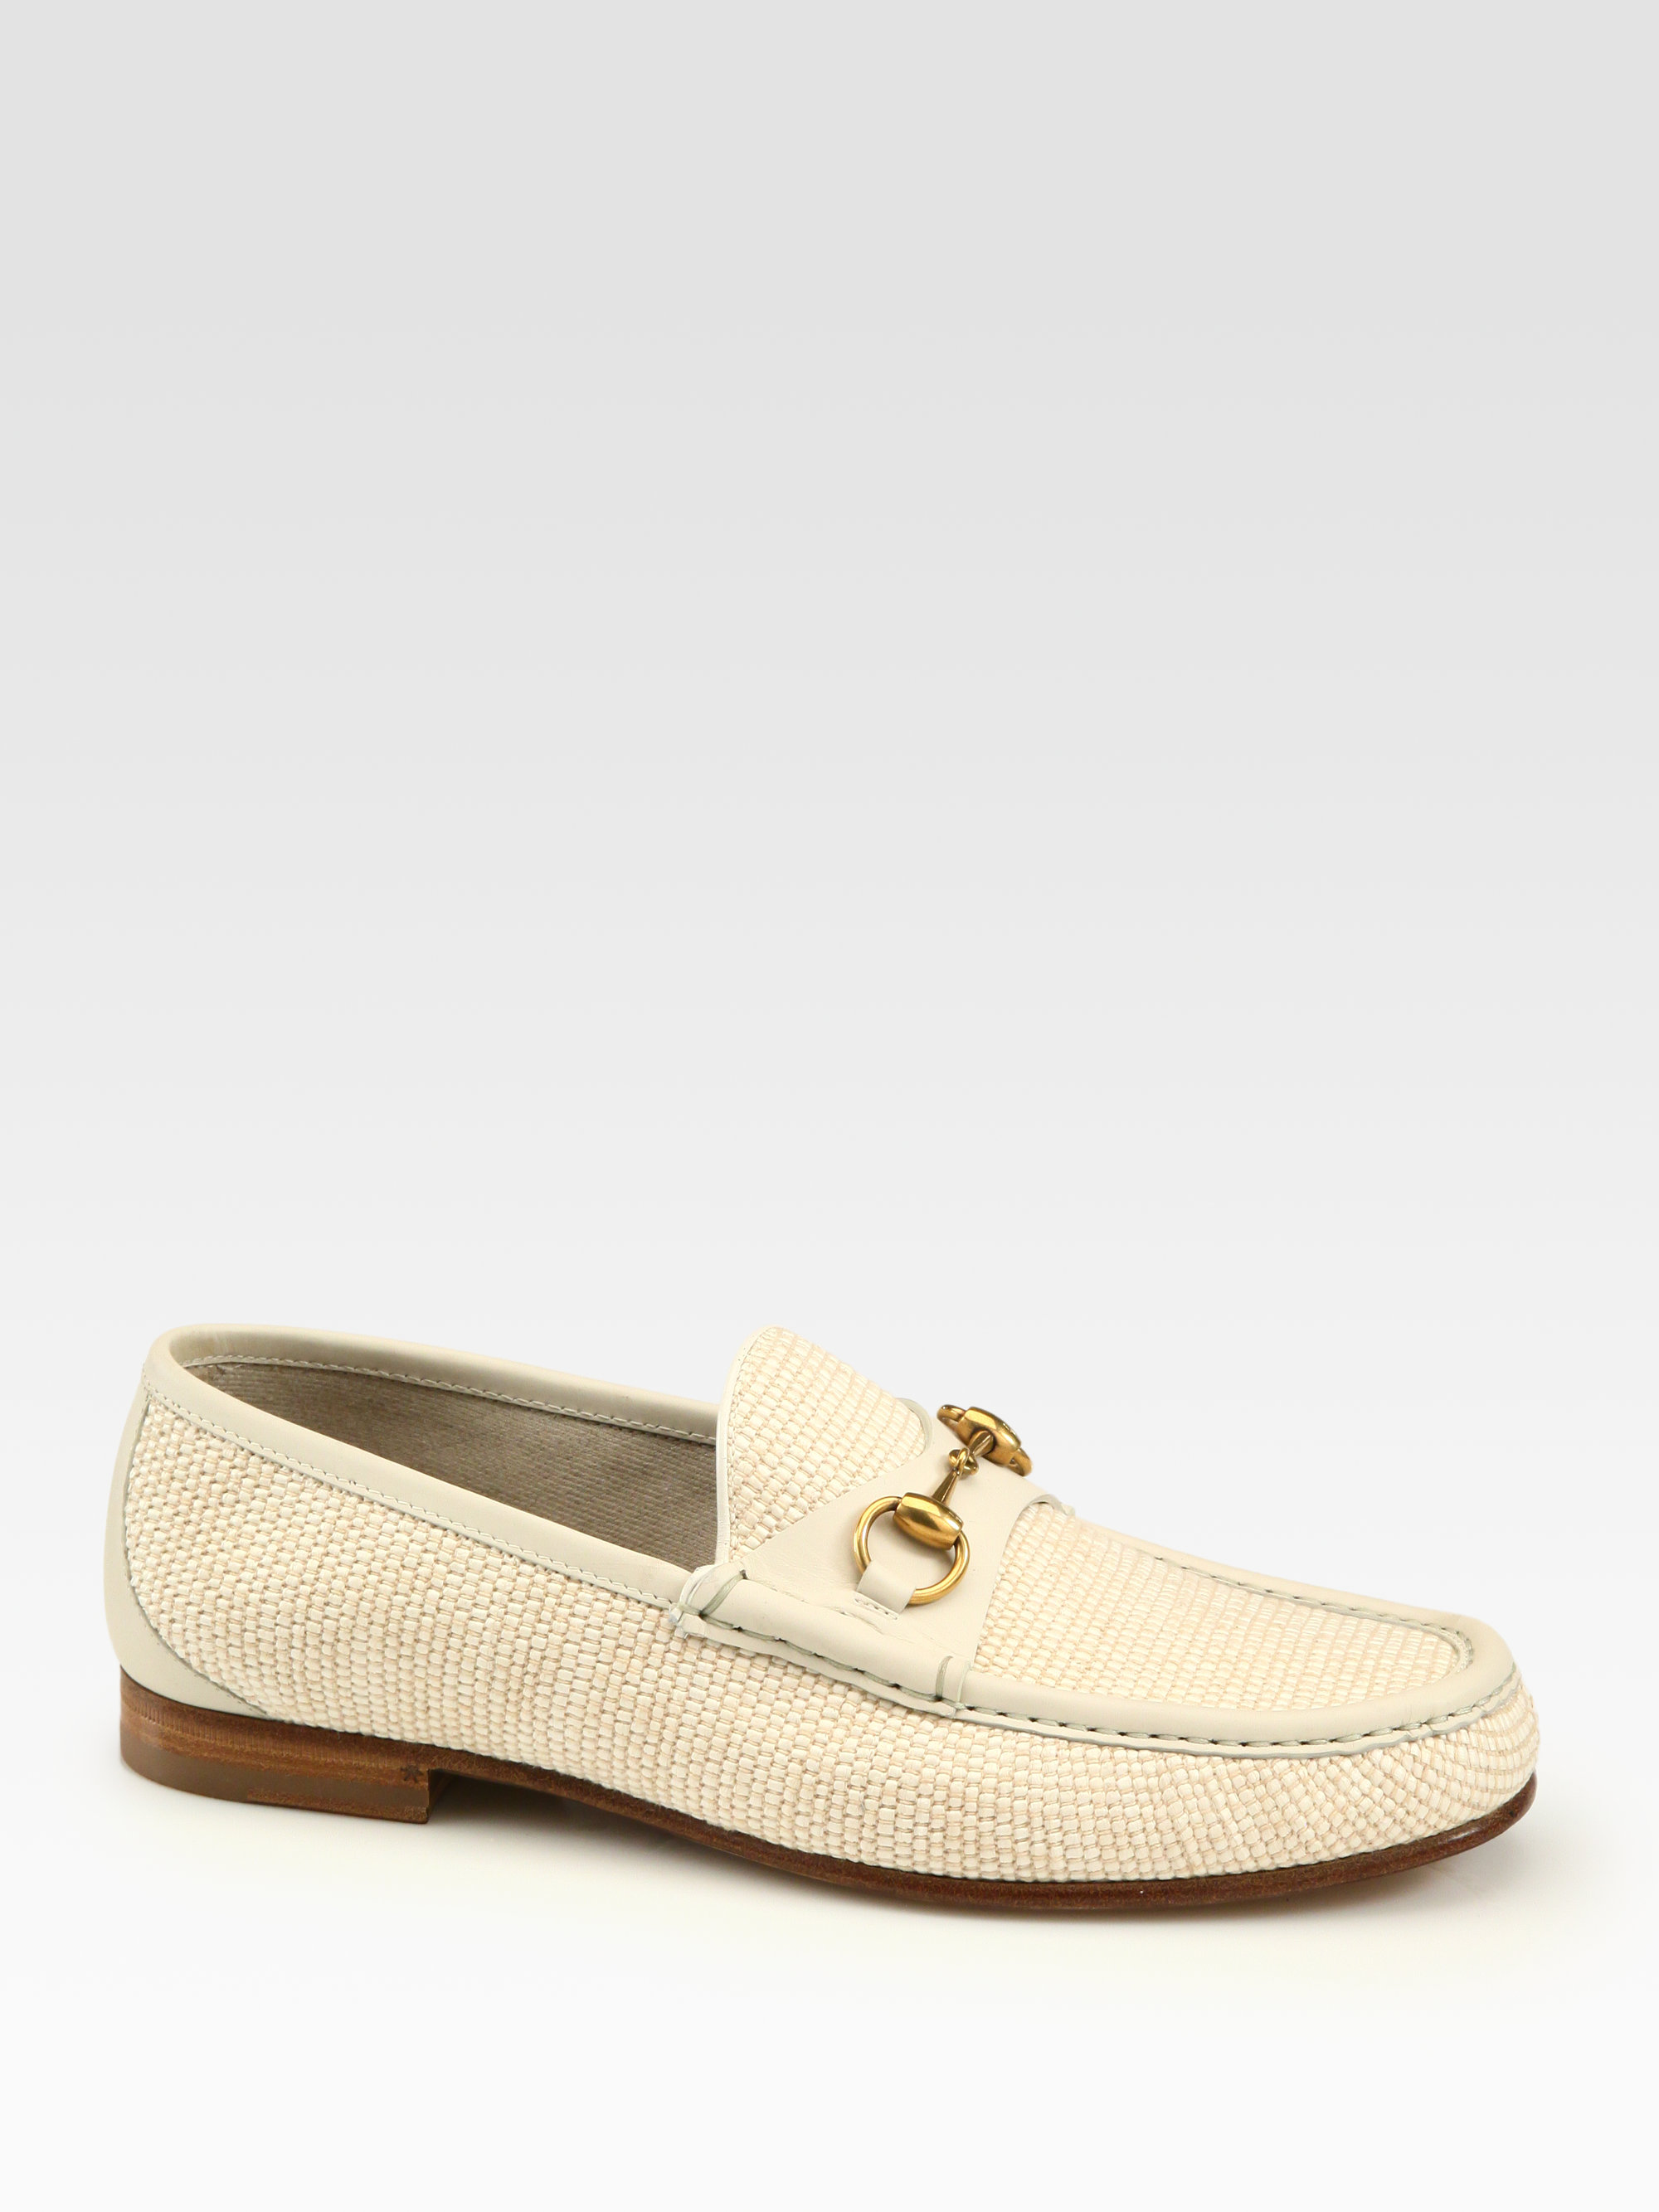 201d6035a7f Lyst - Gucci White Straw Horsebit Loafer in Natural for Men